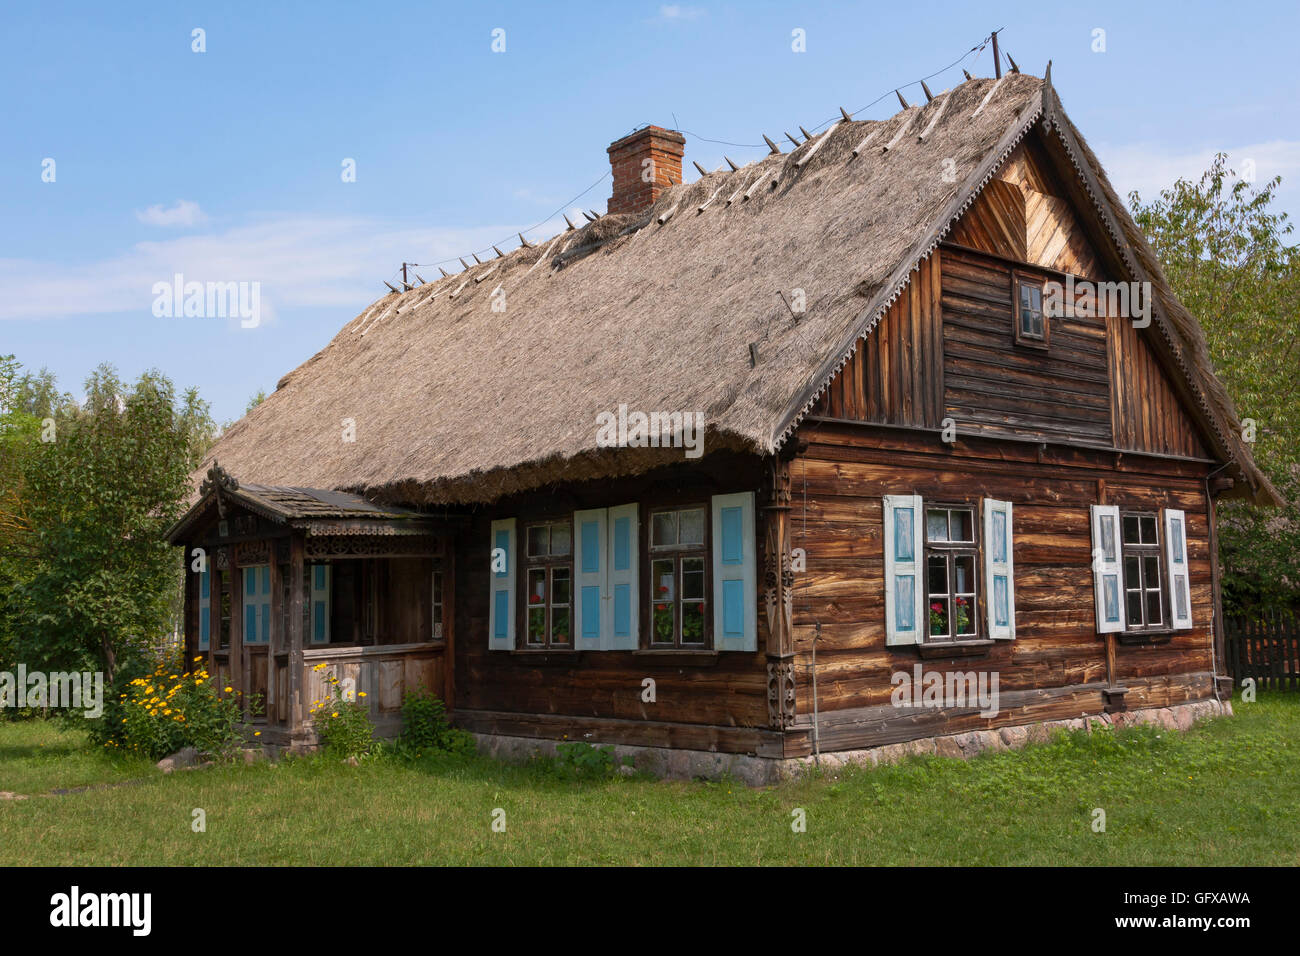 Old country cottage thatched roof in a natural environment - Stock Image